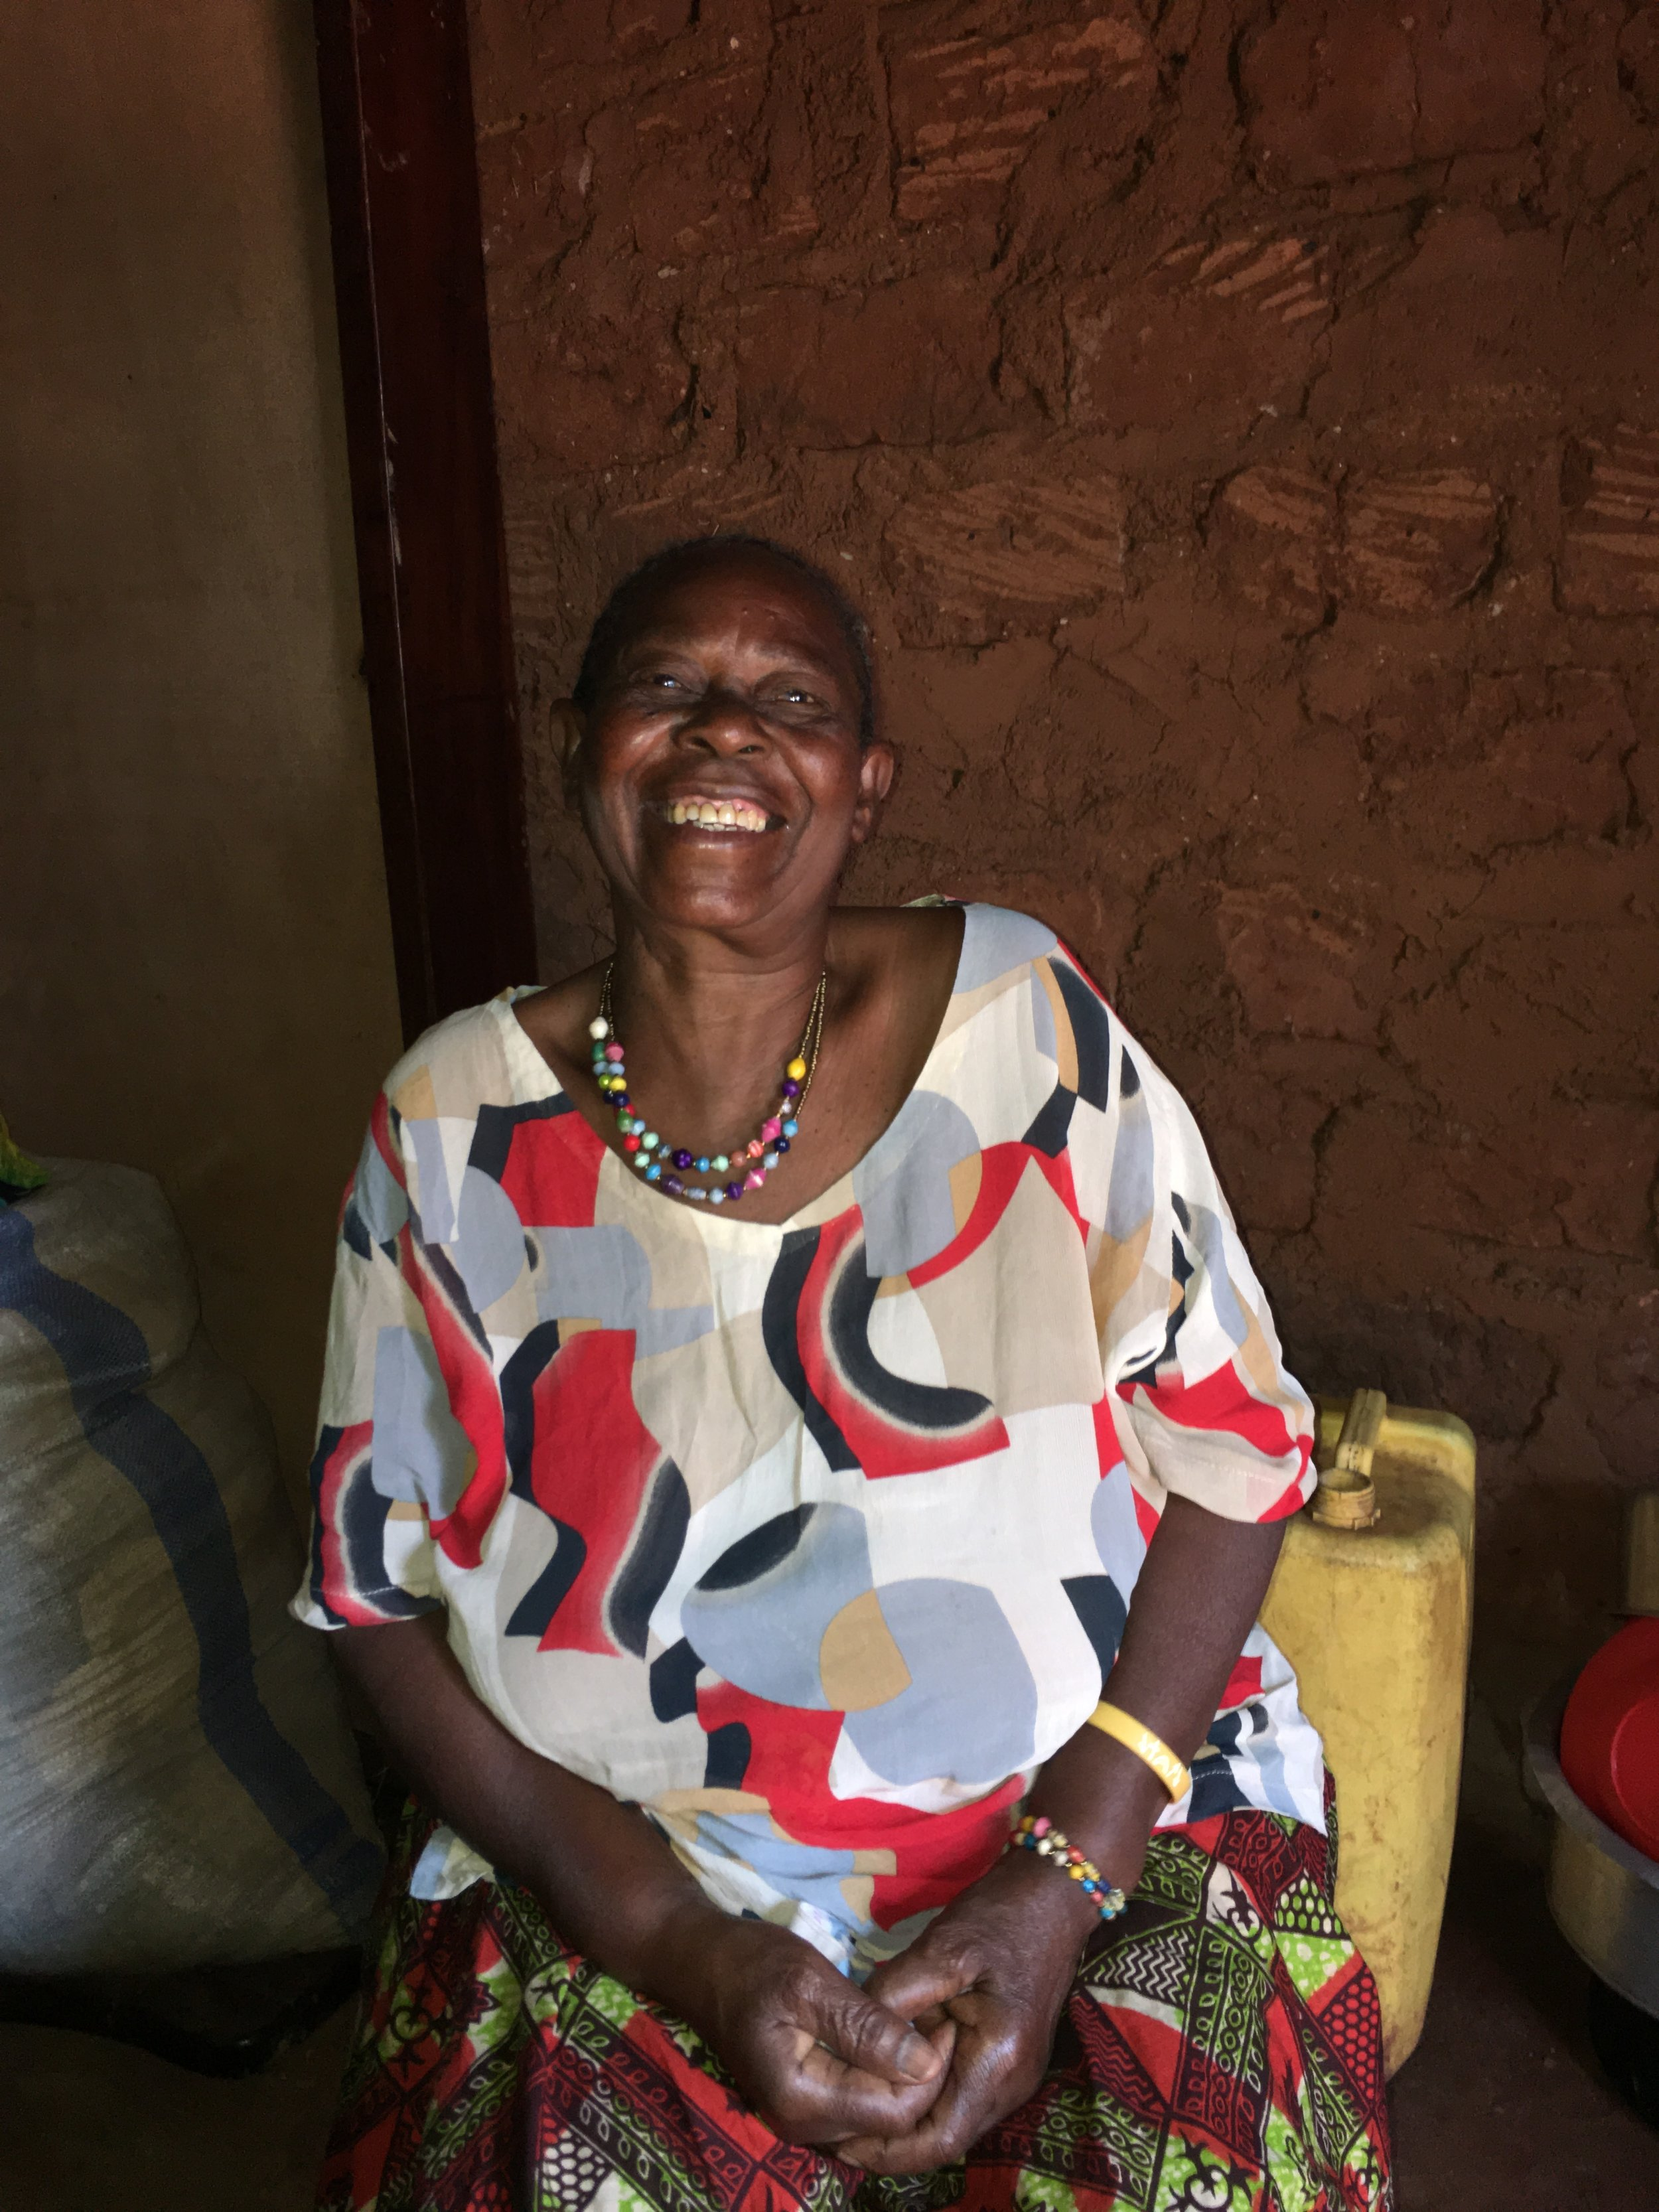 #7 Ruth's House - At the start of 2018, Ruth's house had one wall that had fallen down. She was able to save and rebuild her house herself! We did not pay her any extra to make this possible. She was empowered and so proud to show us her rebuilt house this past summer!